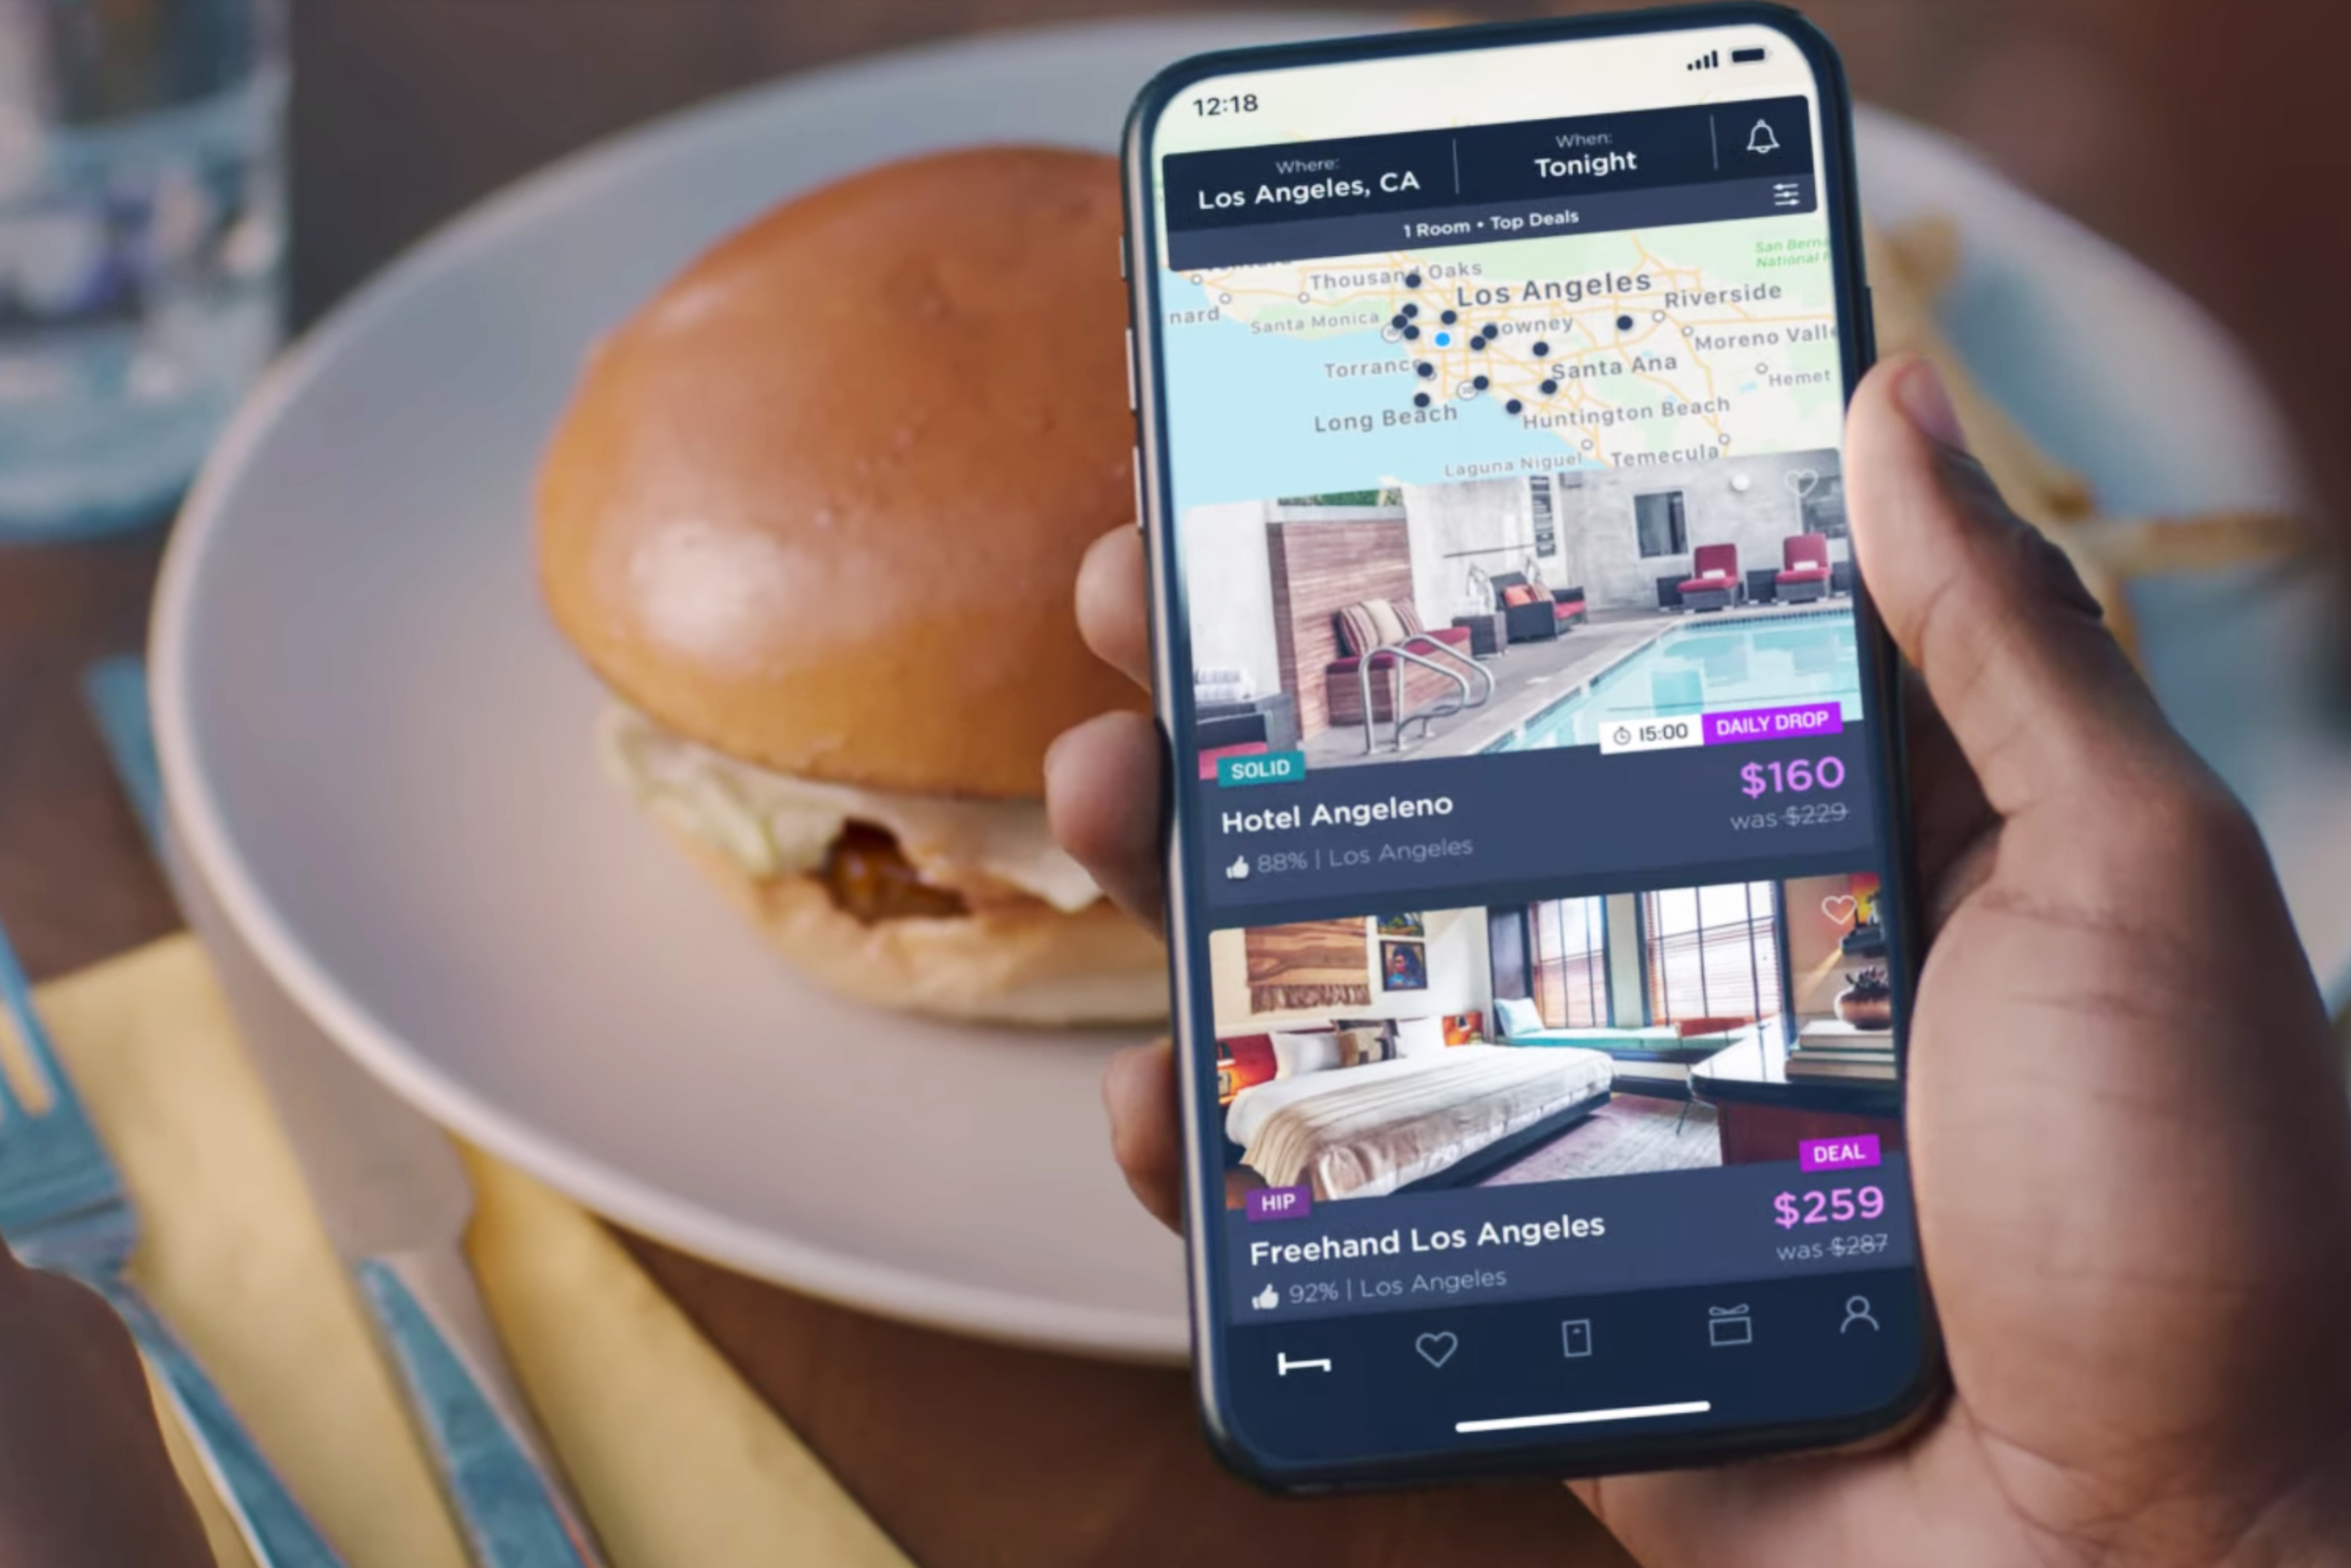 Behind Airbnb's purchase of HotelTonight and push into hotels